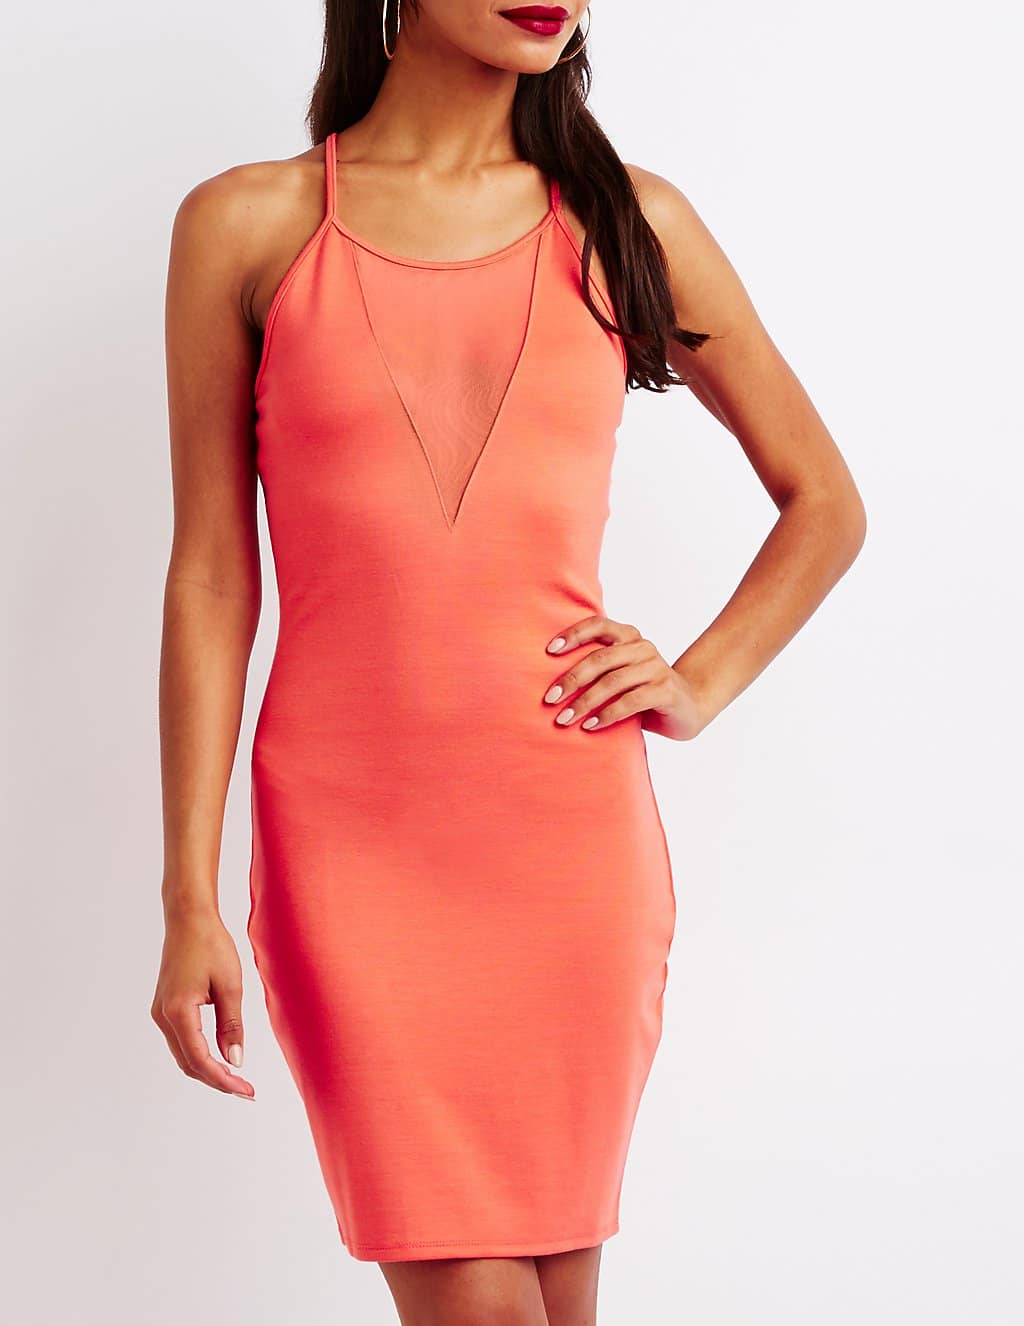 e52f42f76be Charlotte Russe 30% Off Sale Dresses + Additional 10% Off EXPIRED